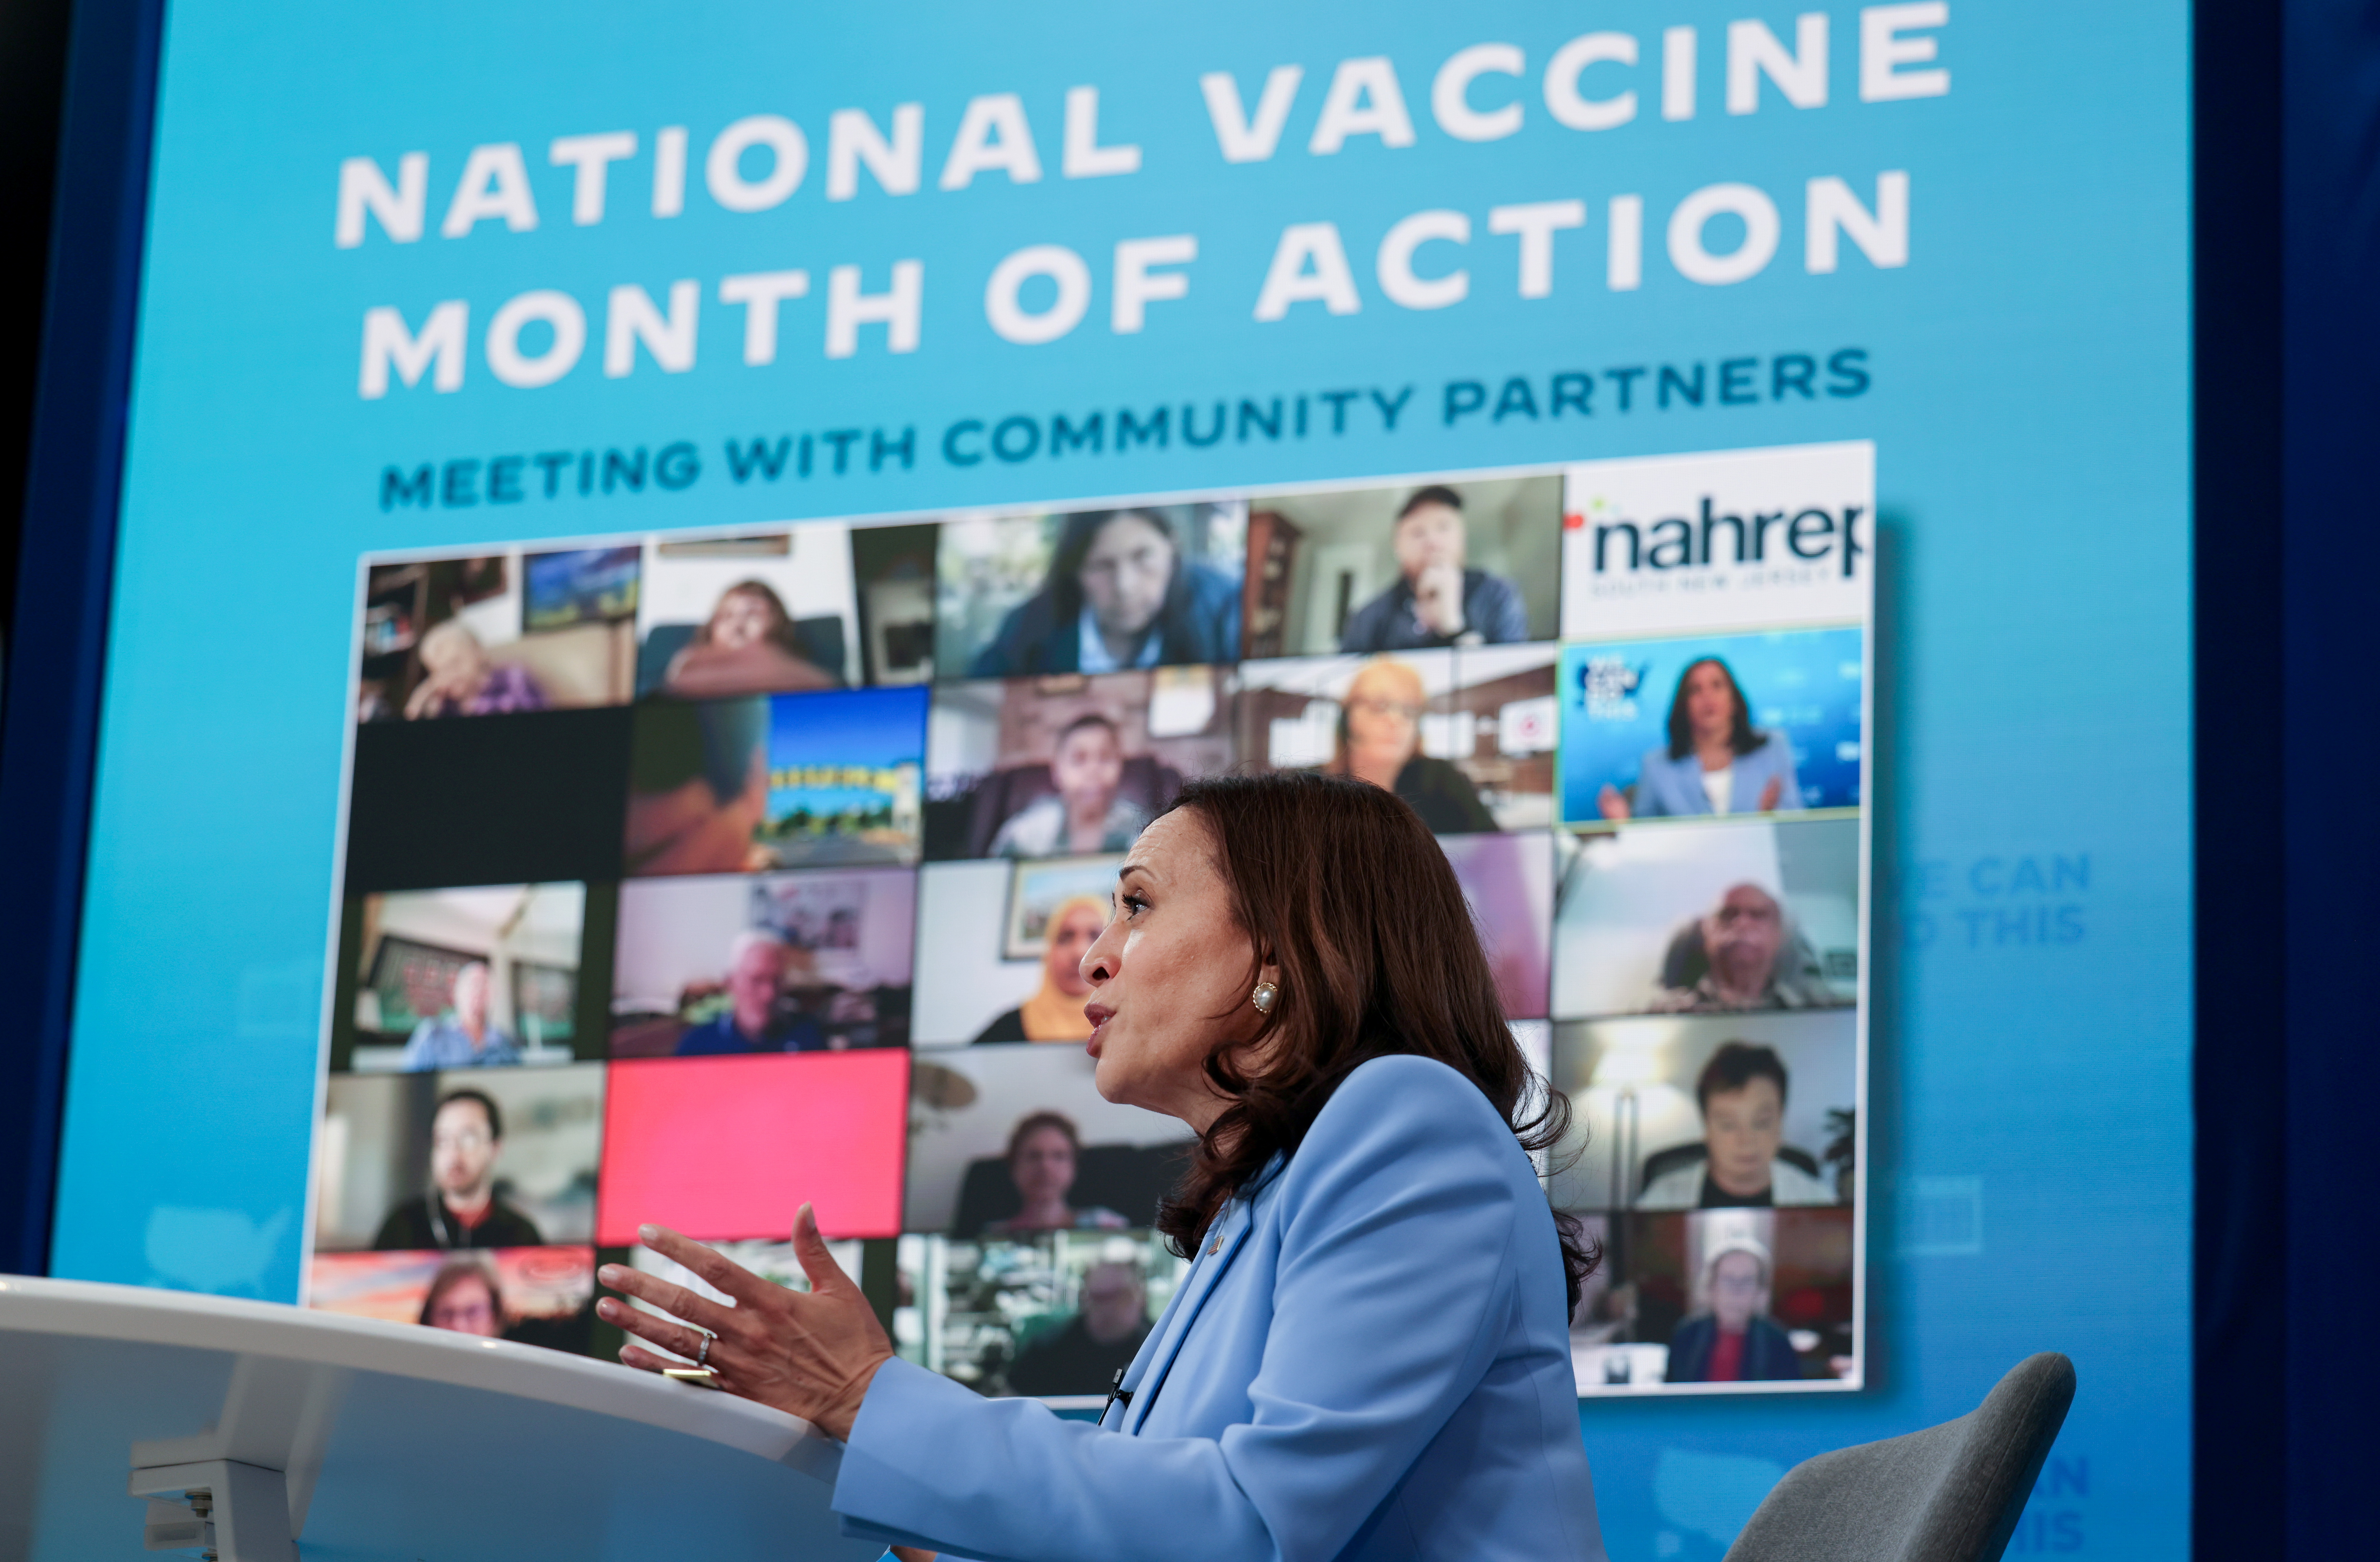 U.S. Vice President Kamala Harris addresses partners engaged in public health efforts to encourage more people to get COVID-19 vaccinations during a